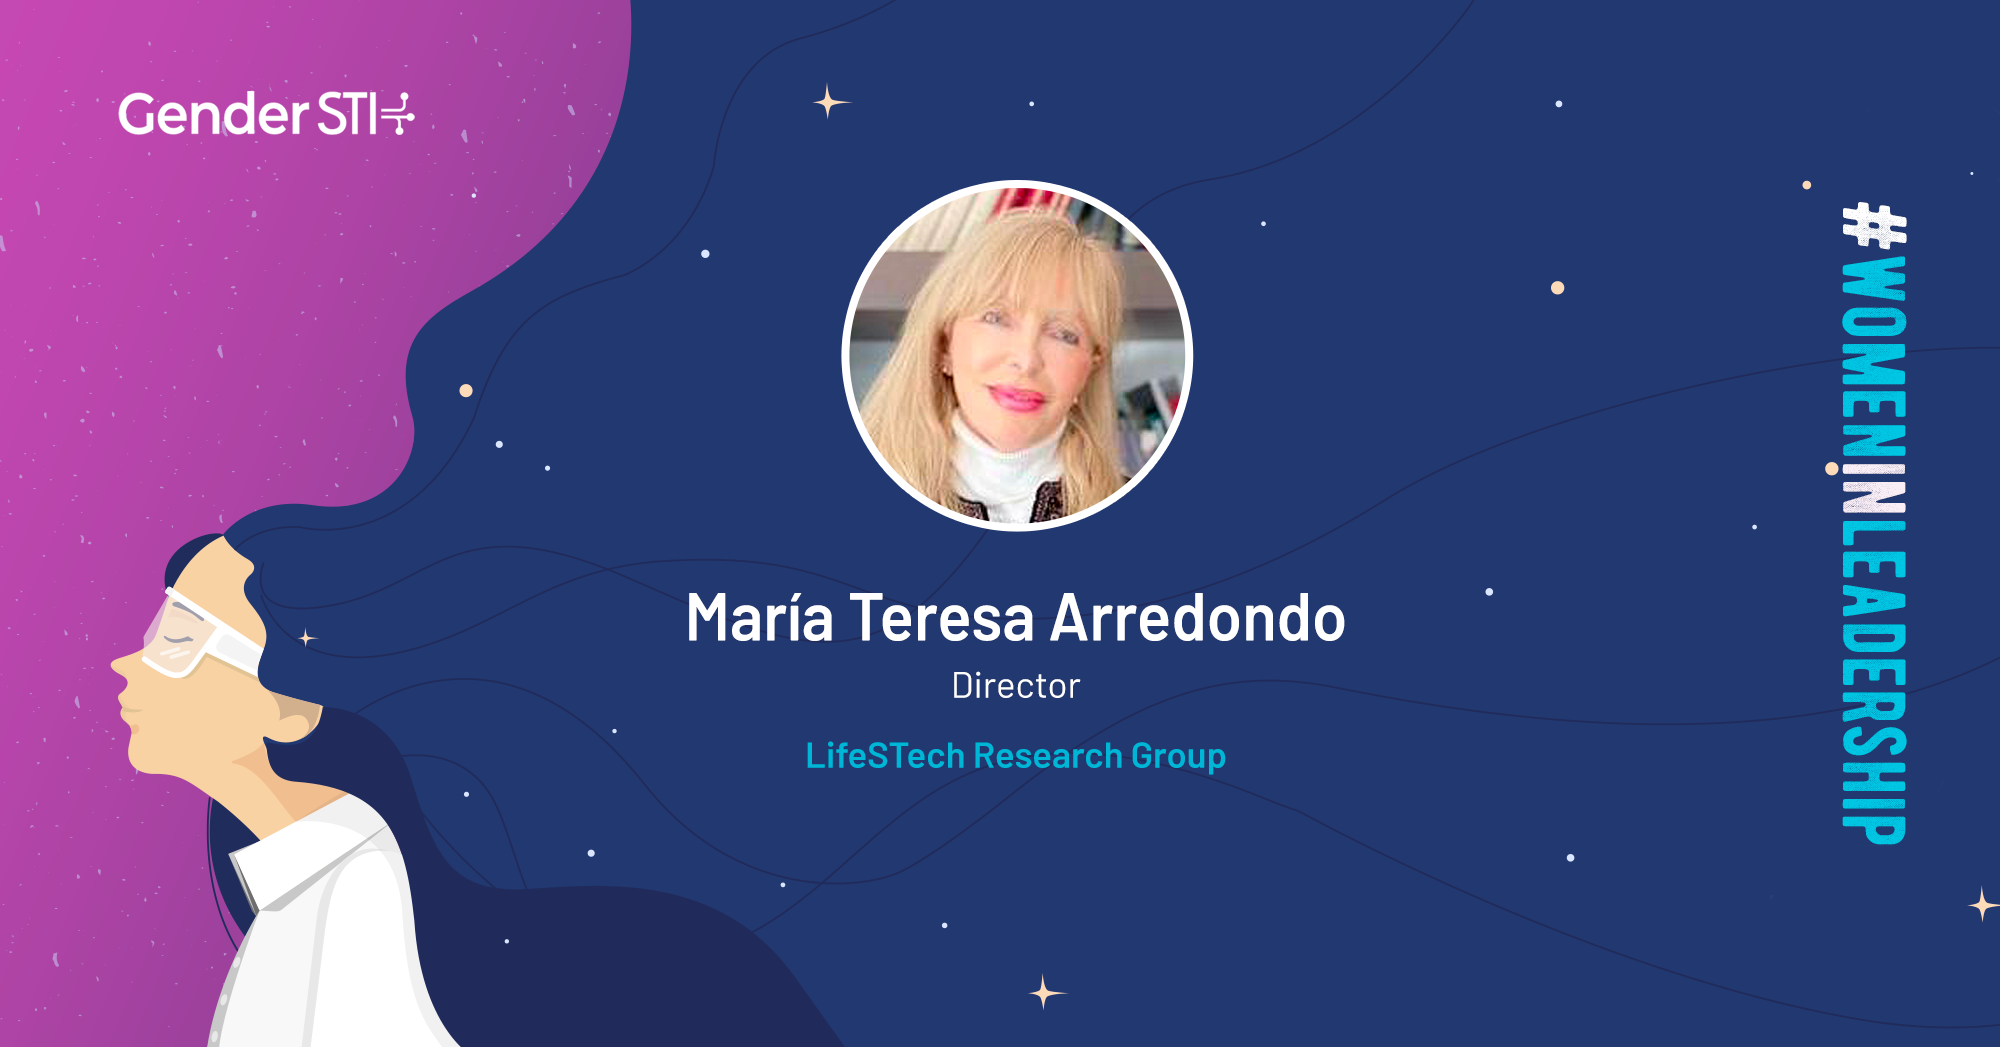 María Teresa Arredondo, director of the LifeSTech research group, is one of Gender STI's #WomenInLeadership nominees.